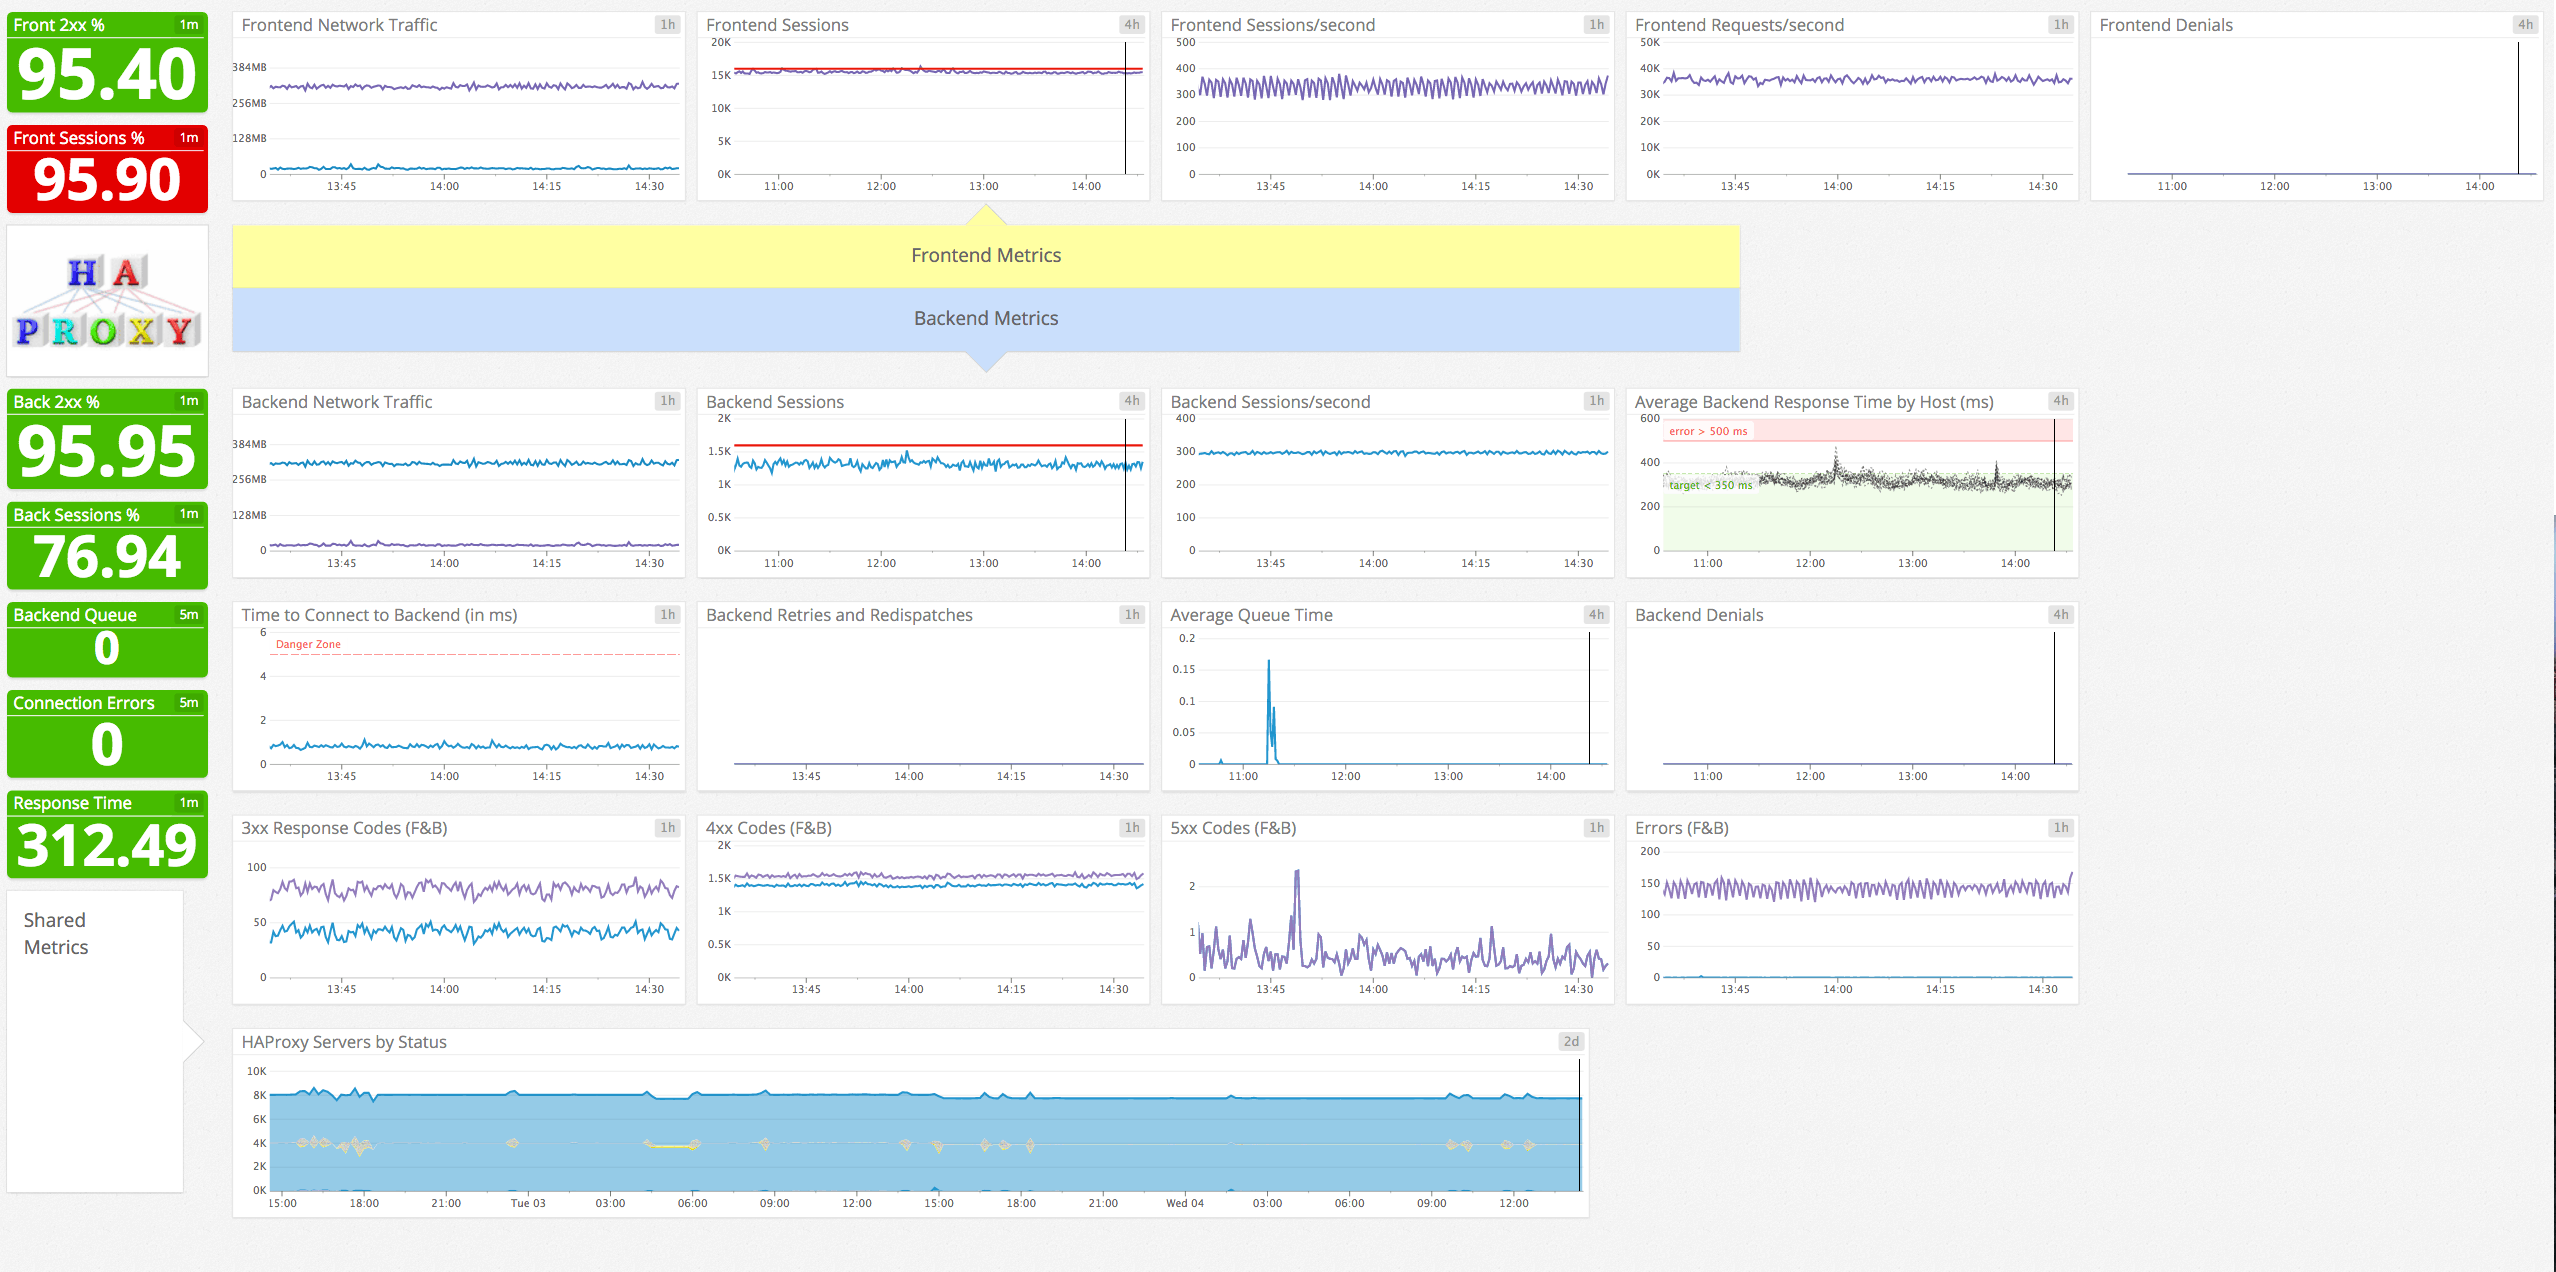 Frontend and backend metrics